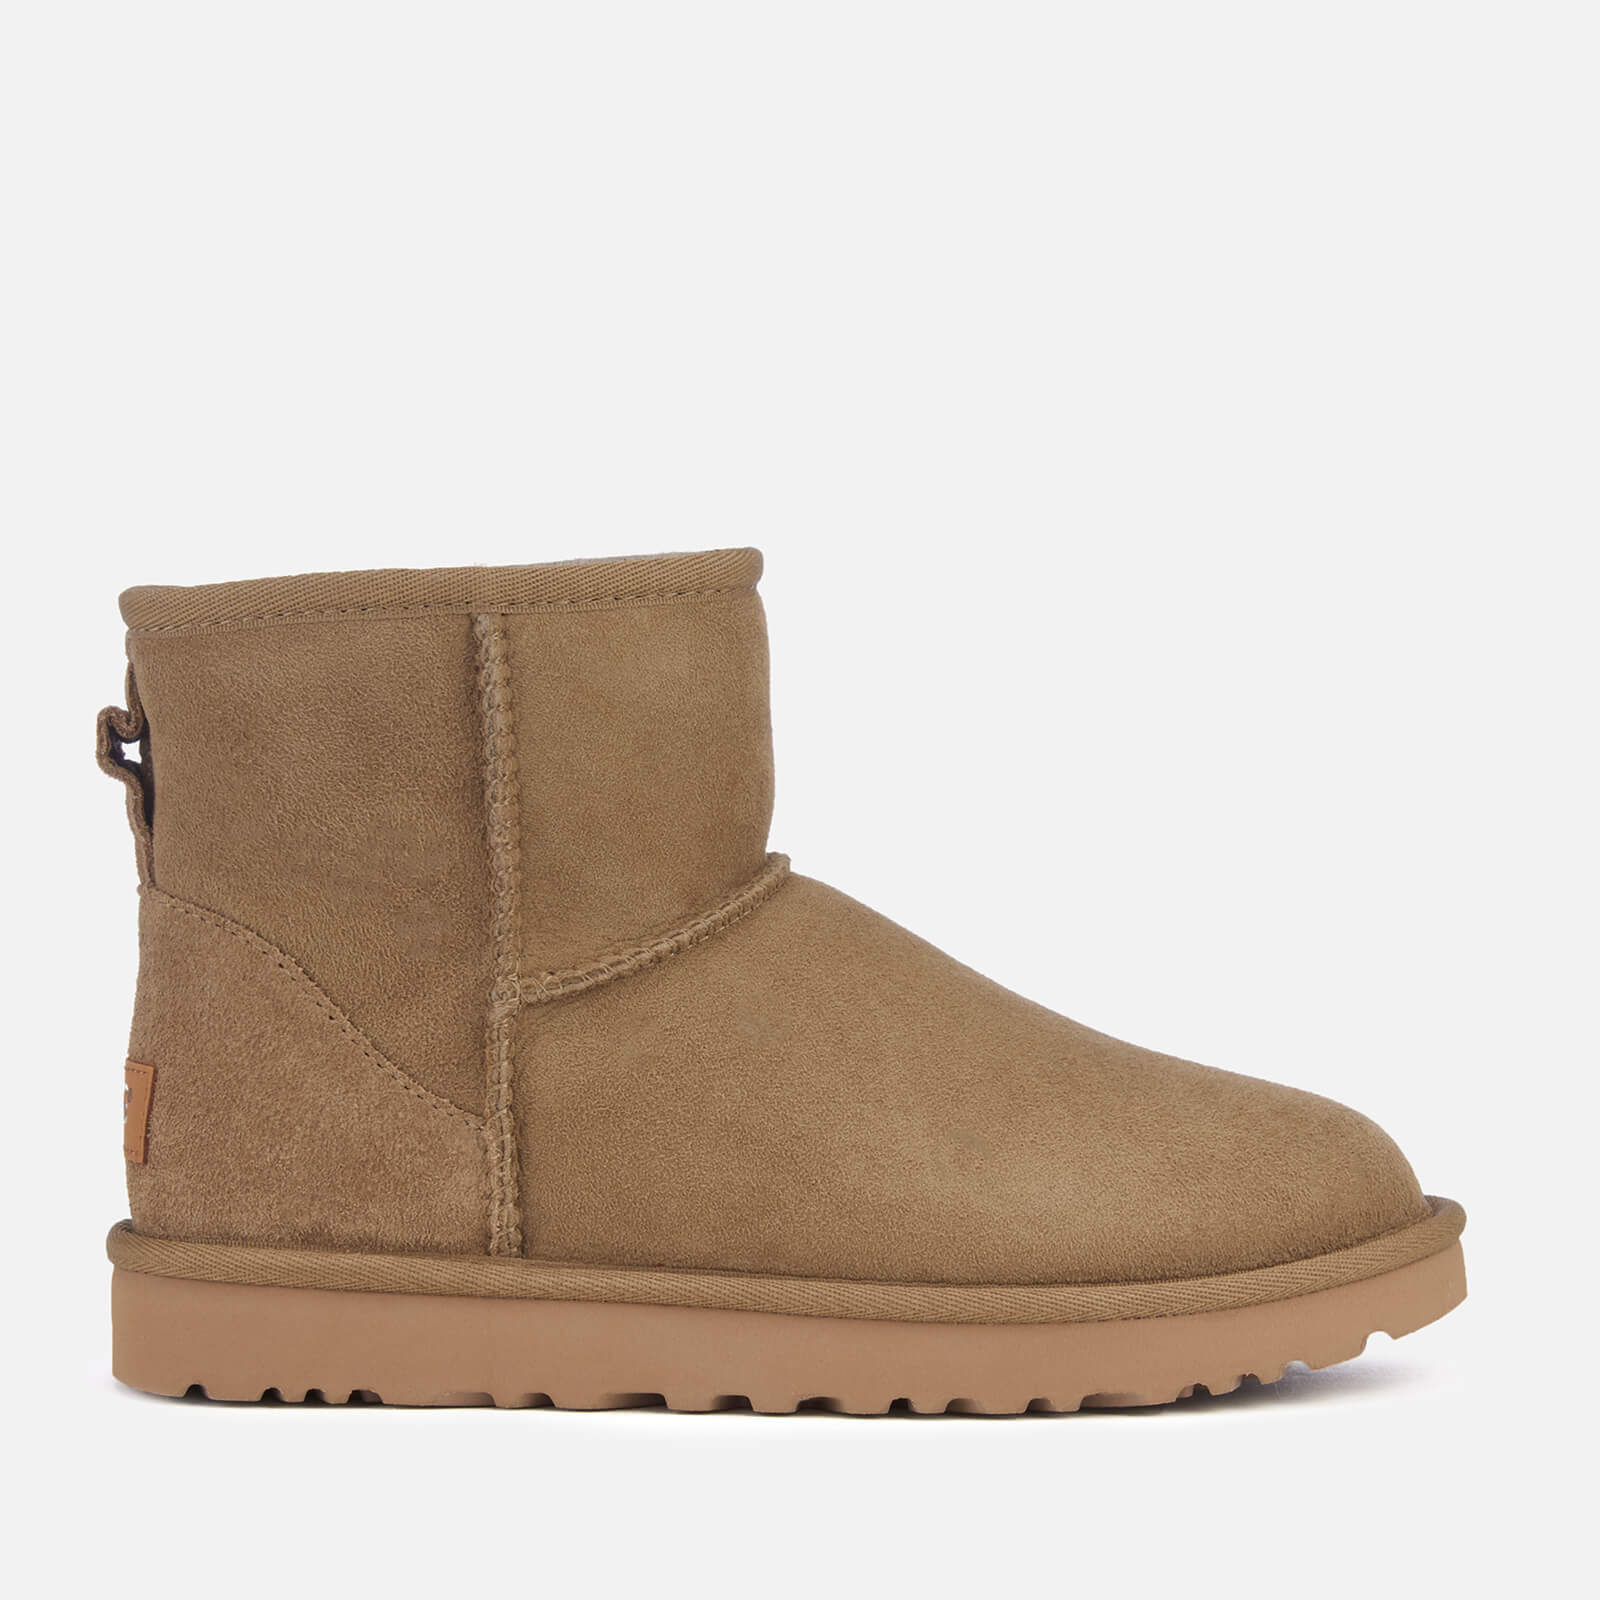 Ugg Womens Classic Mini Ii Sheepskin Boots Antilope Womens